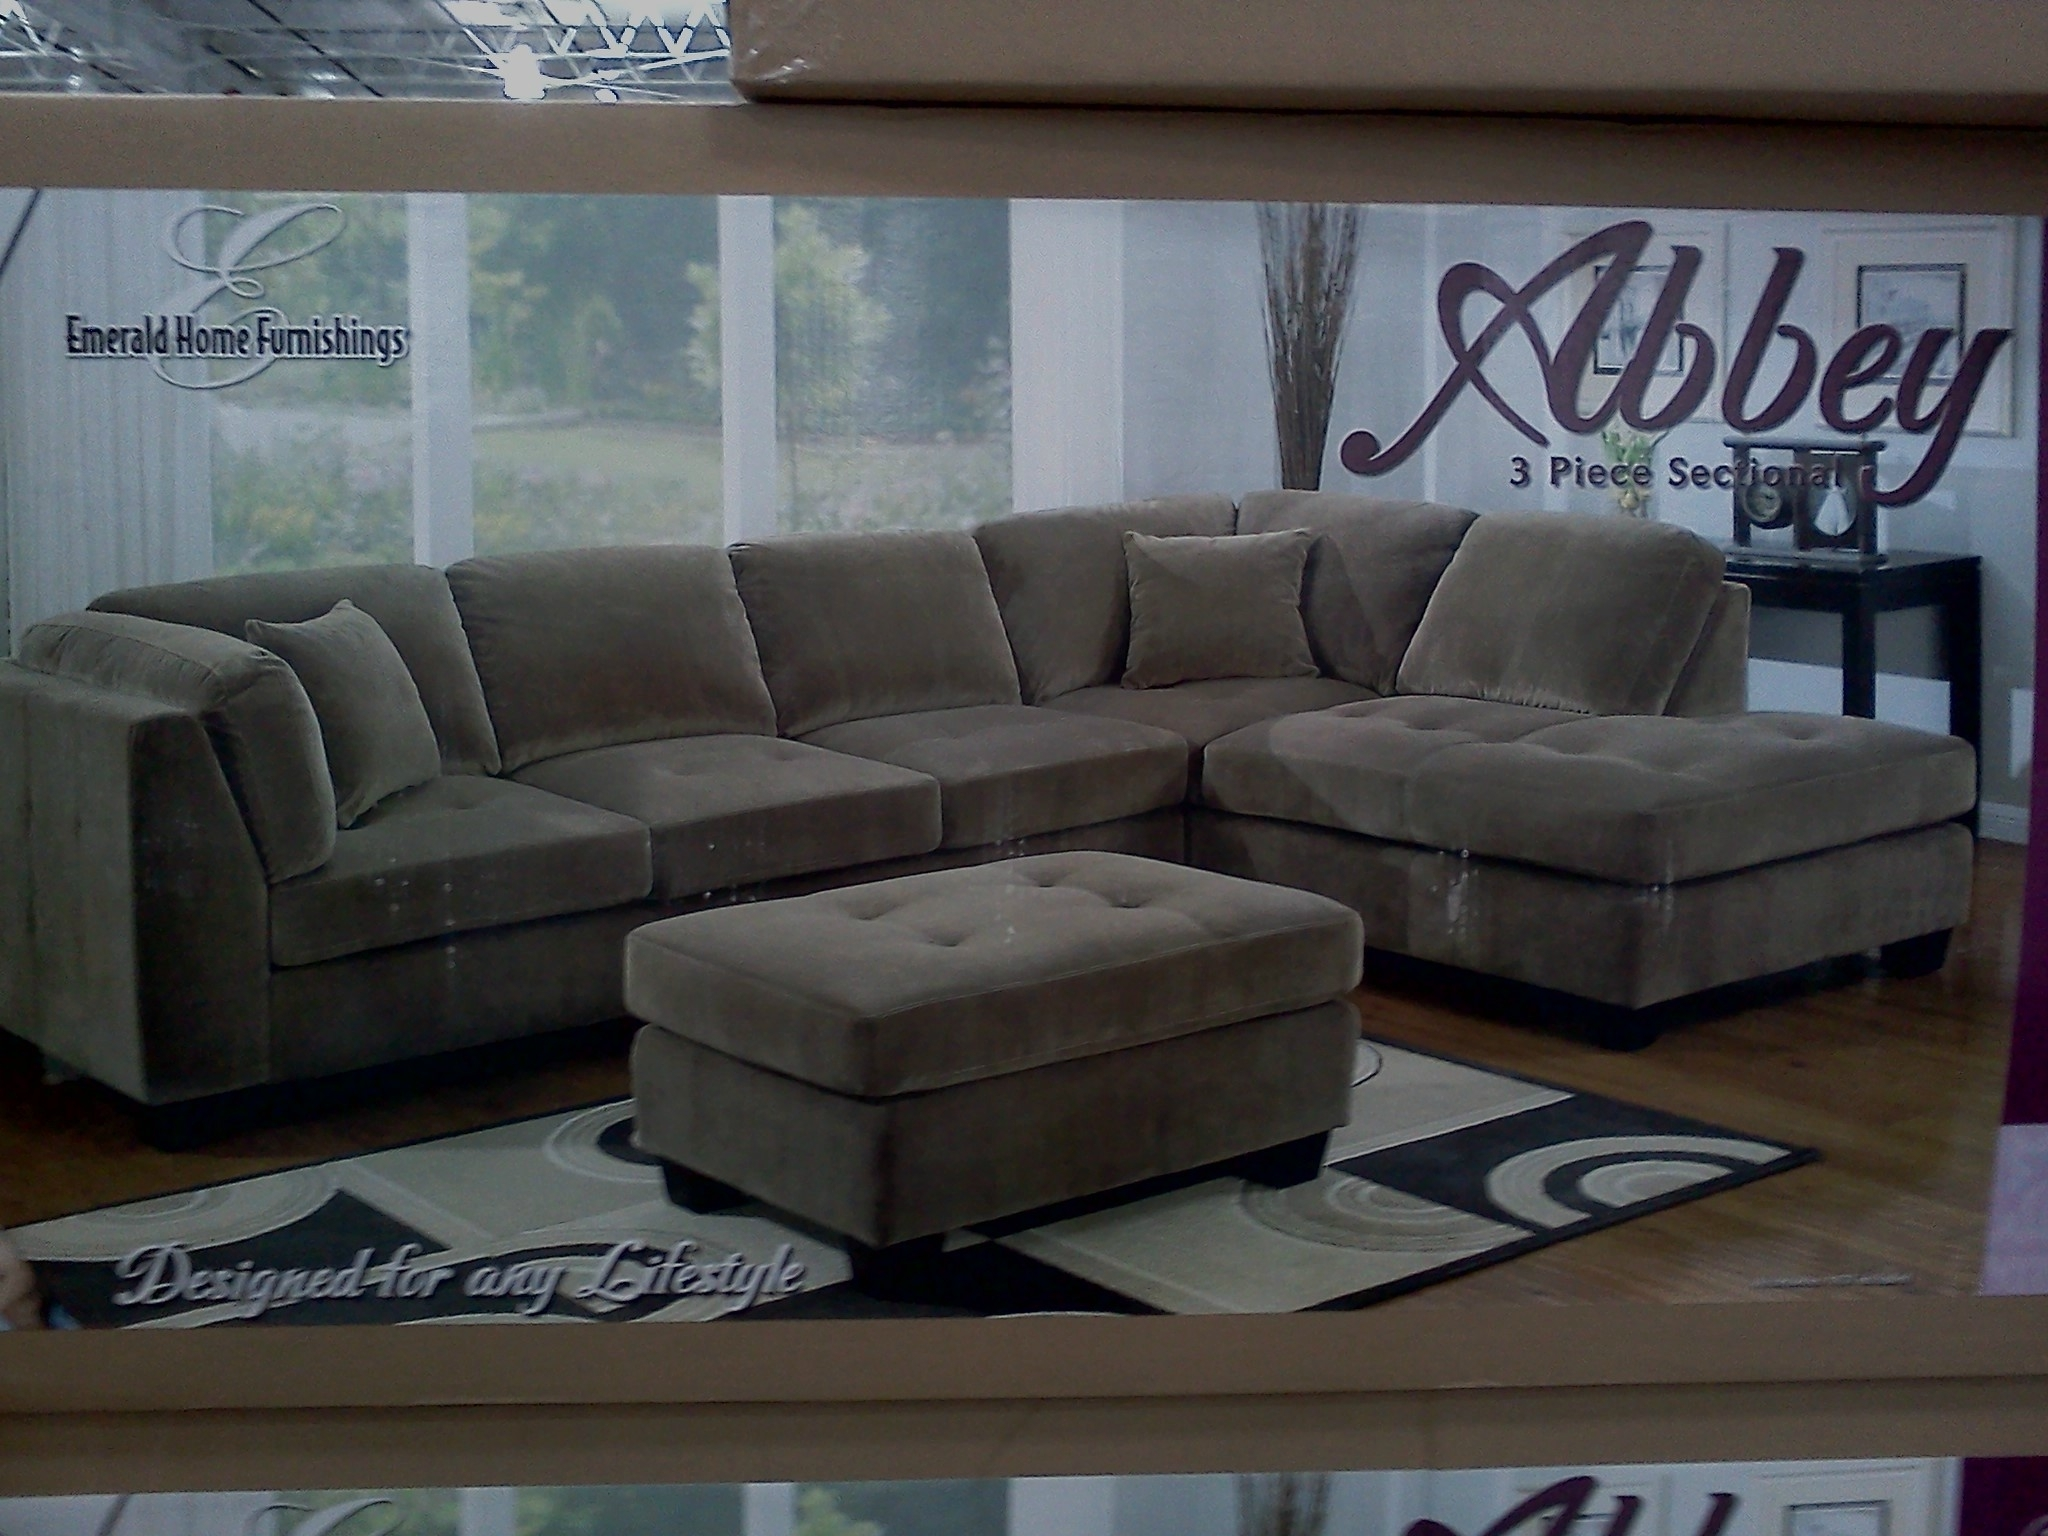 Costco Emerald Home Modular Sectional Slickdeals – Kaf Mobile Homes For Home Furniture Sectional Sofas (Image 3 of 10)